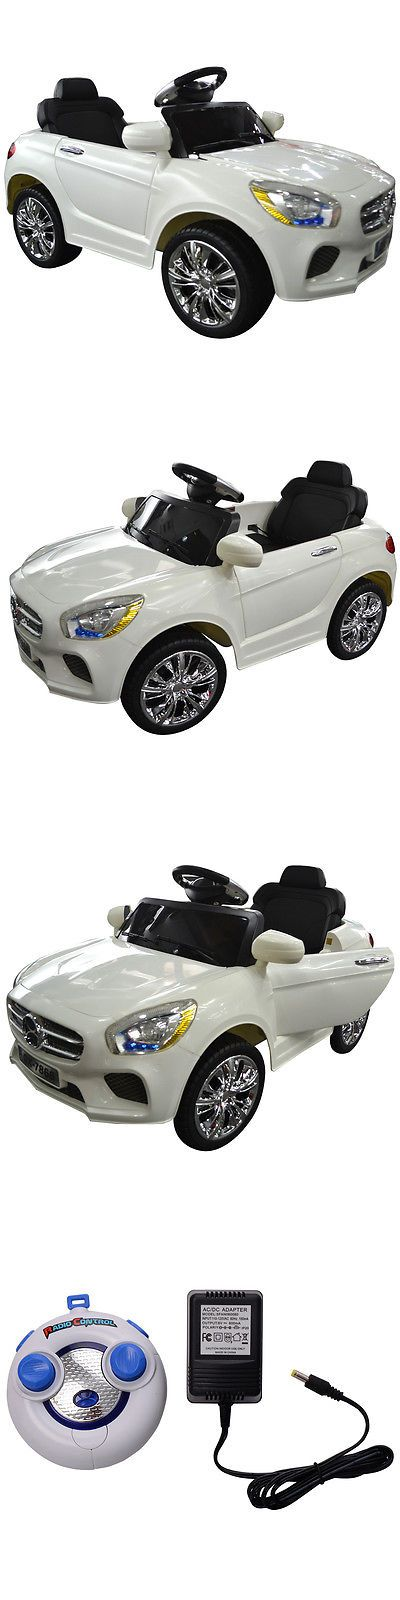 Ride On Toys and Accessories 145944: 6V Kids Ride On Car Rc Remote Control Battery Powered W Led Lights Mp3 White -> BUY IT NOW ONLY: $119.95 on eBay!